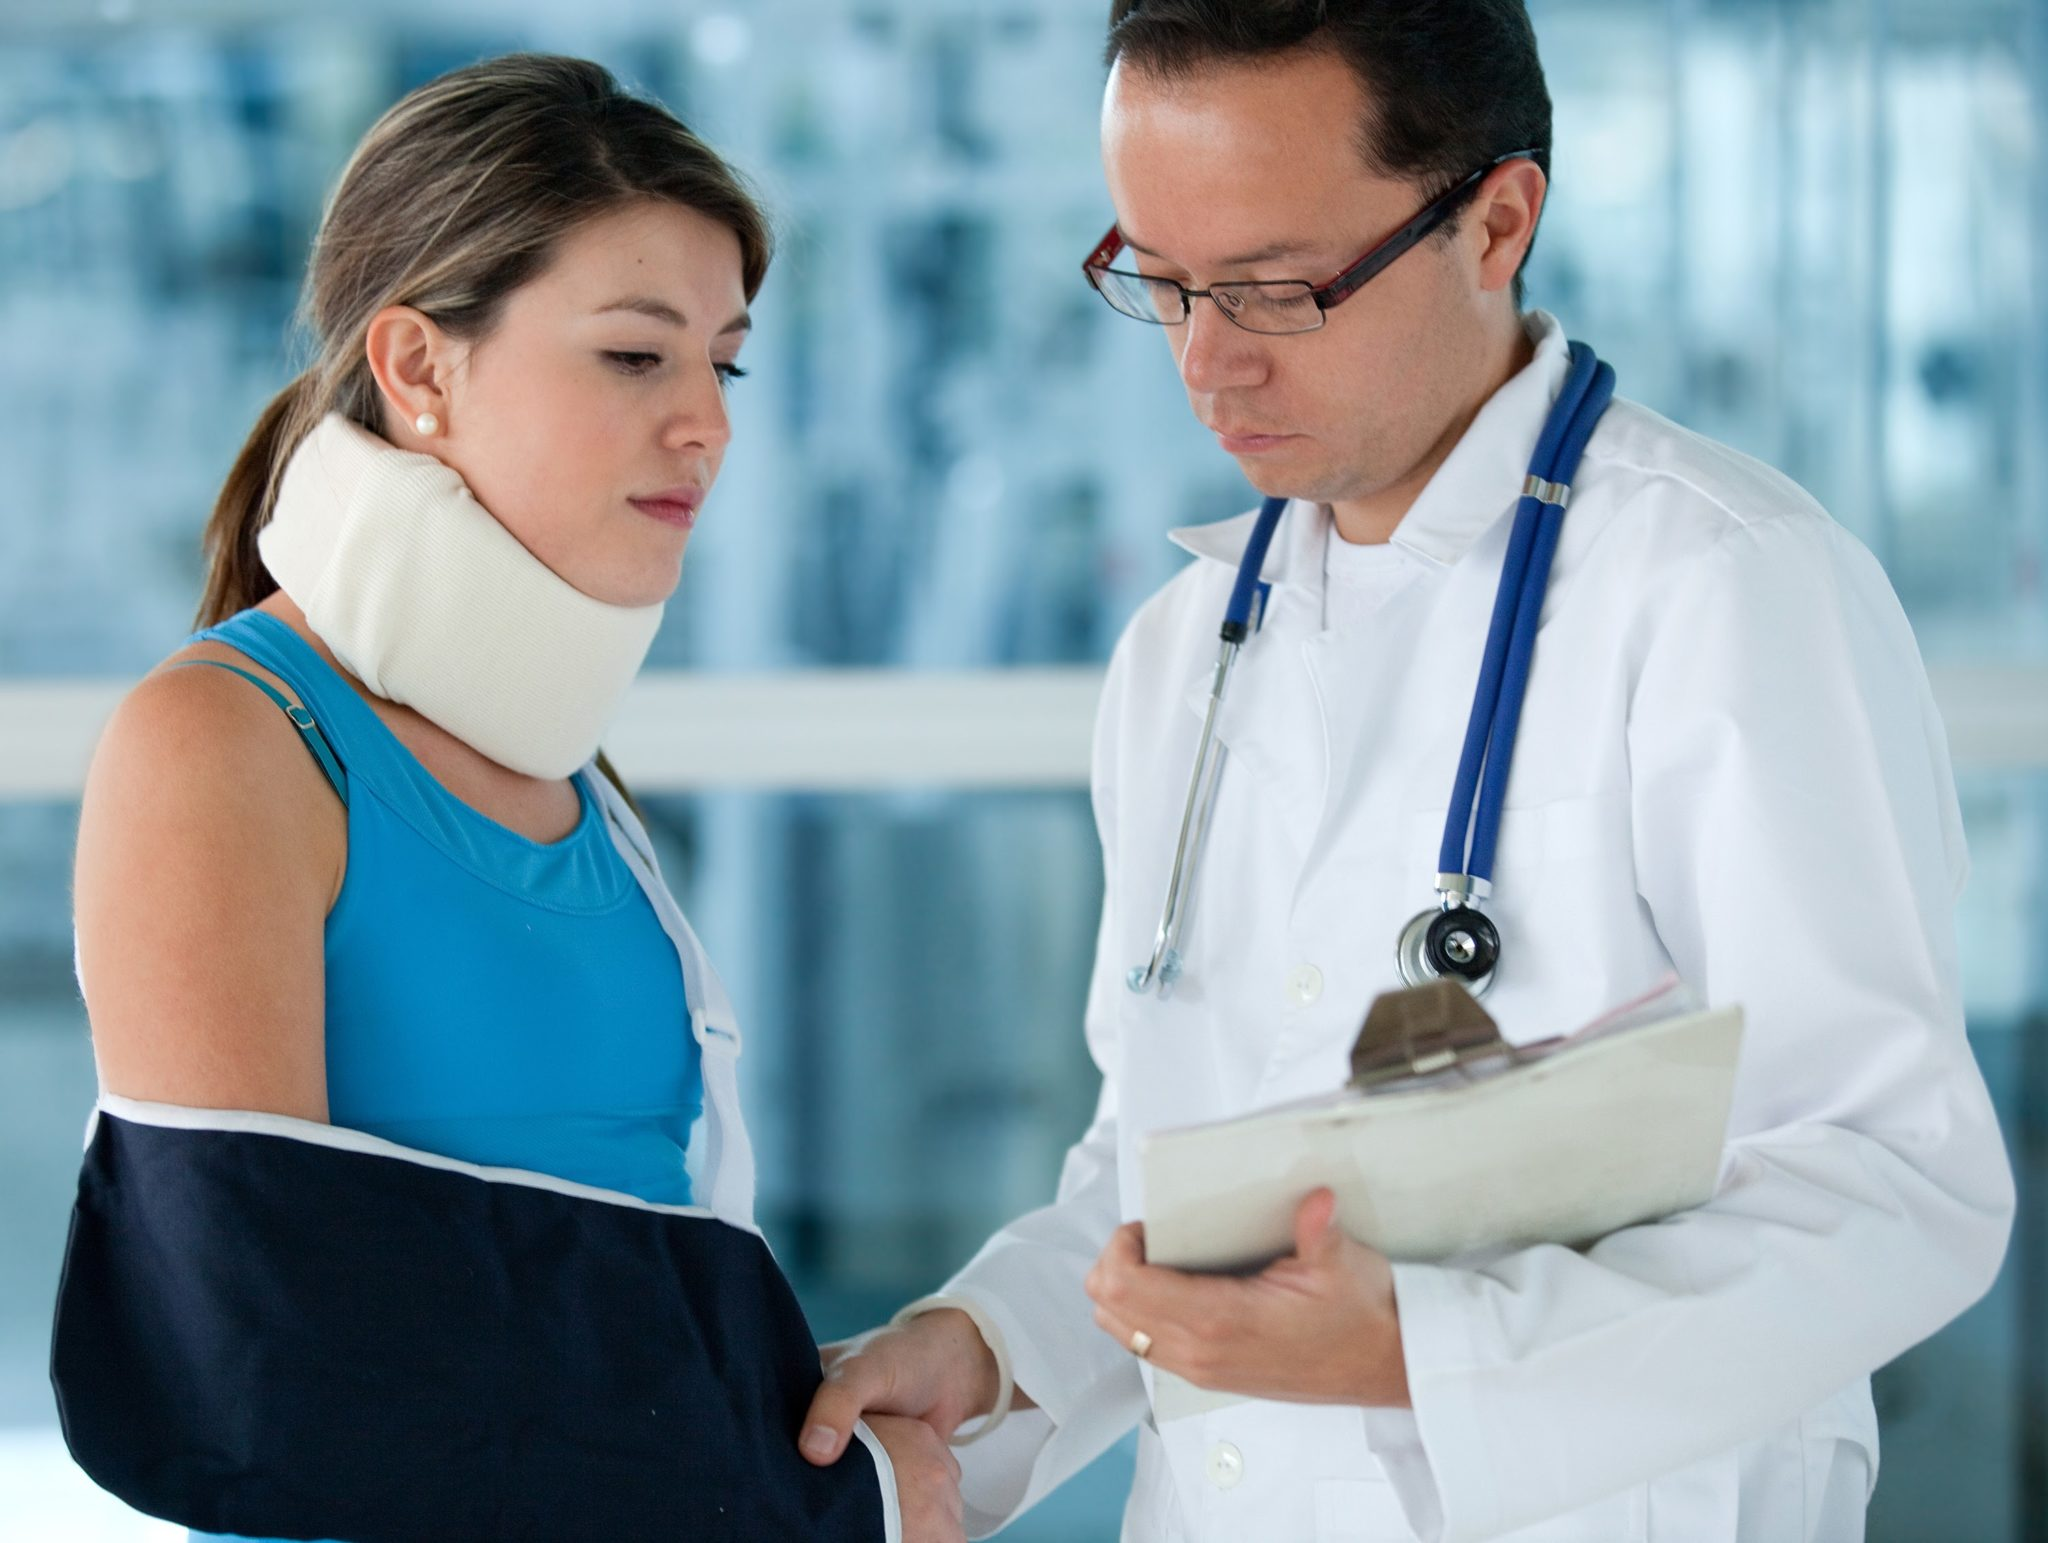 arkansas workers compensation lawyers - Arkansas Hospital Work Injury Lawyer